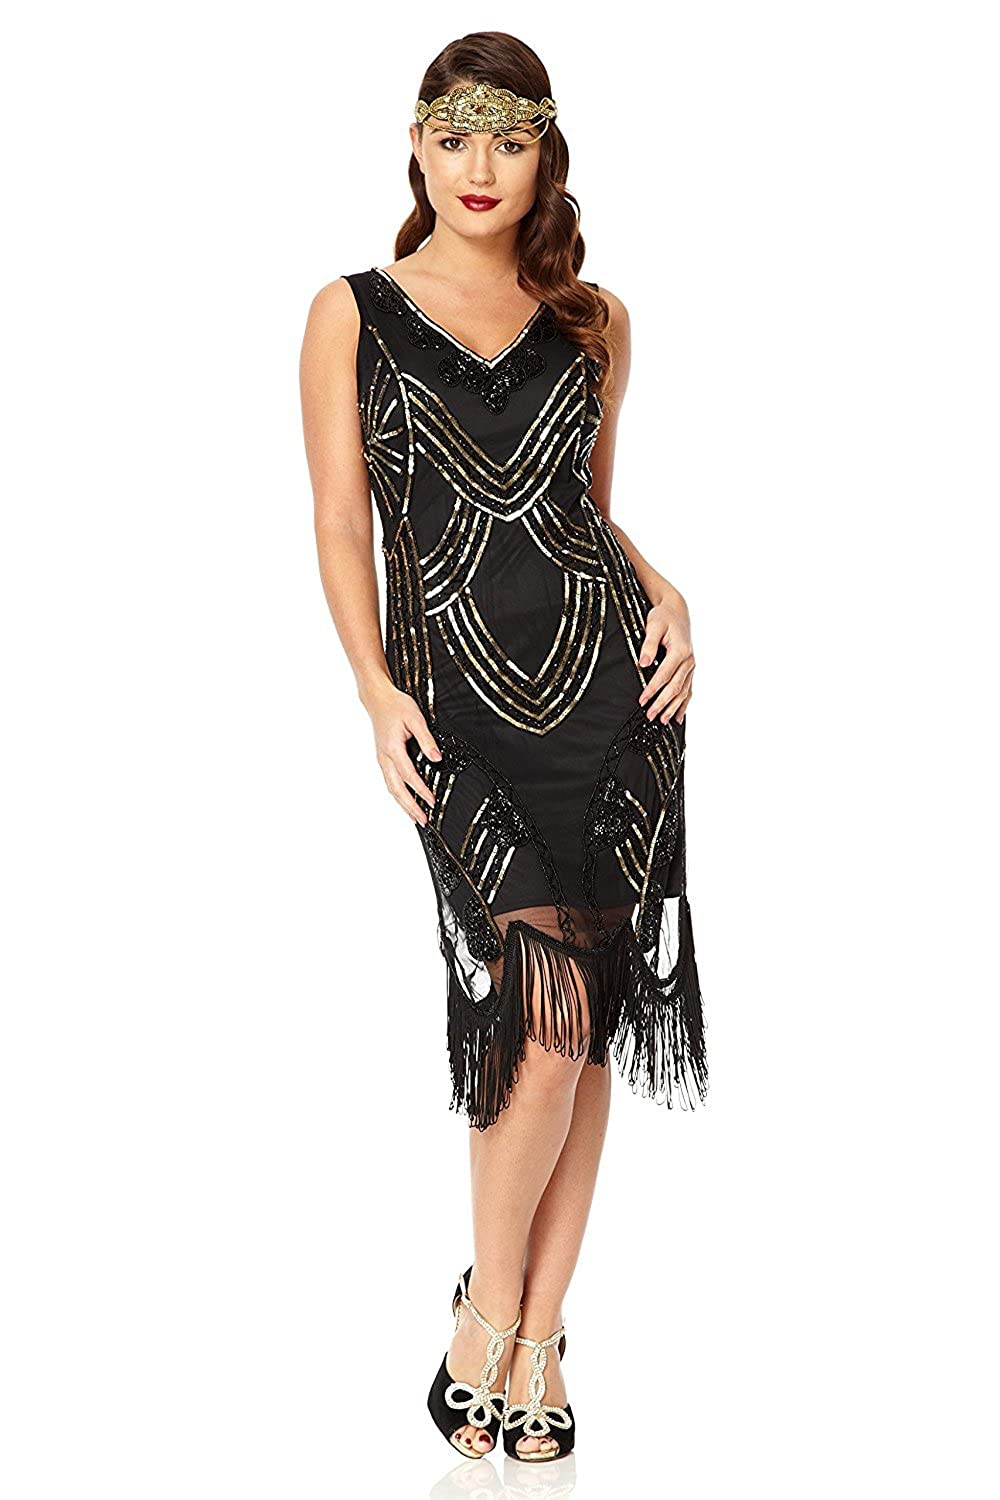 1920s Style Dresses, Flapper Dresses Juliet Vintage Inspired Fringe Dress in Black Gold £89.00 AT vintagedancer.com